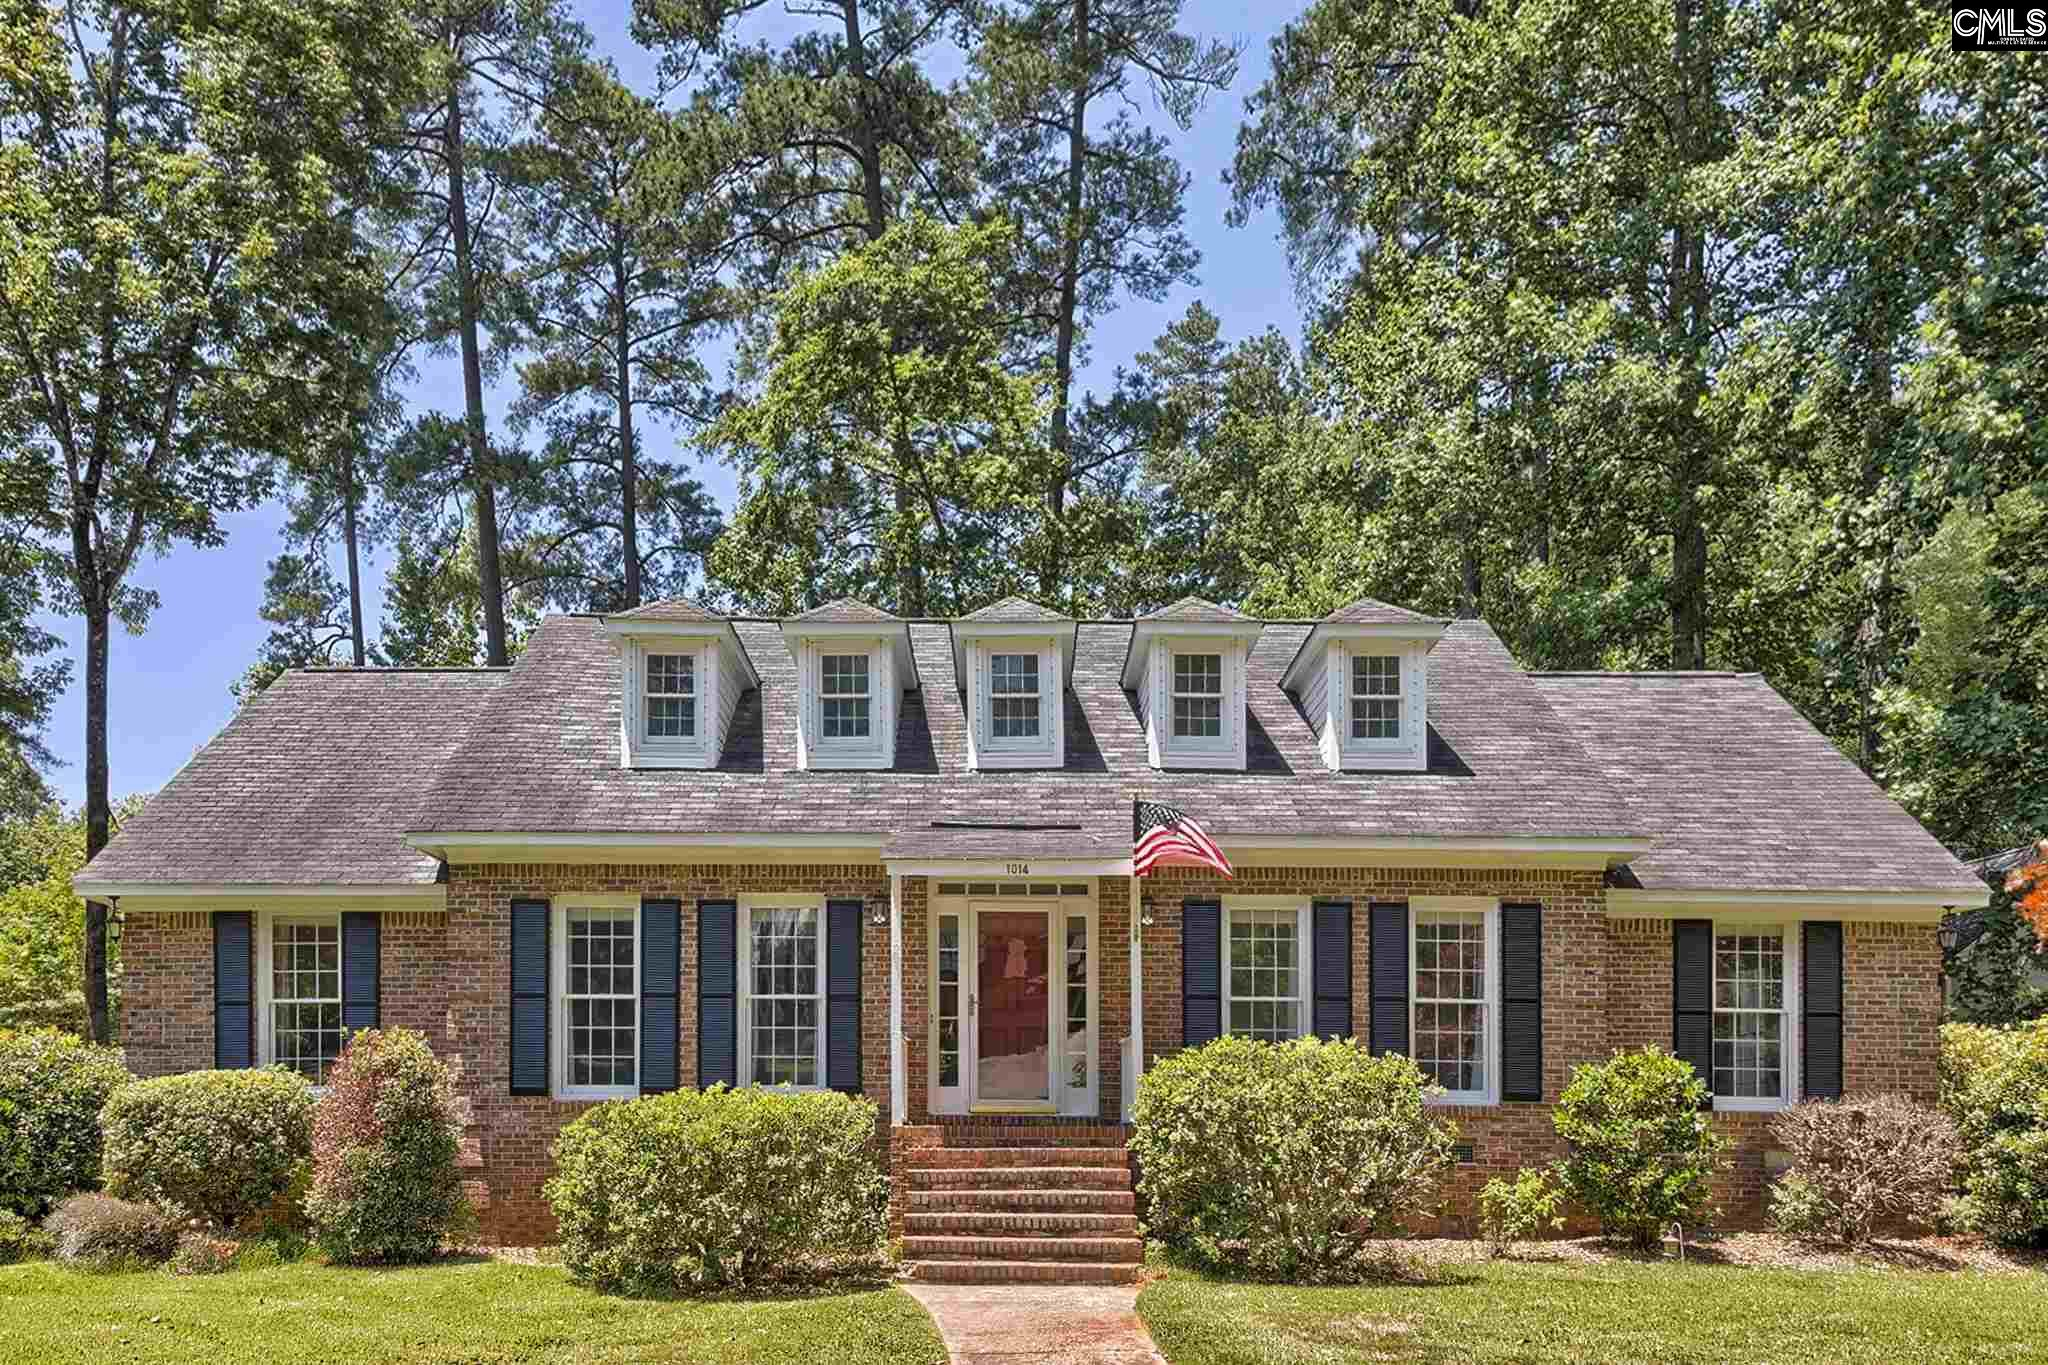 1014 Lofty Pine Columbia, SC 29212